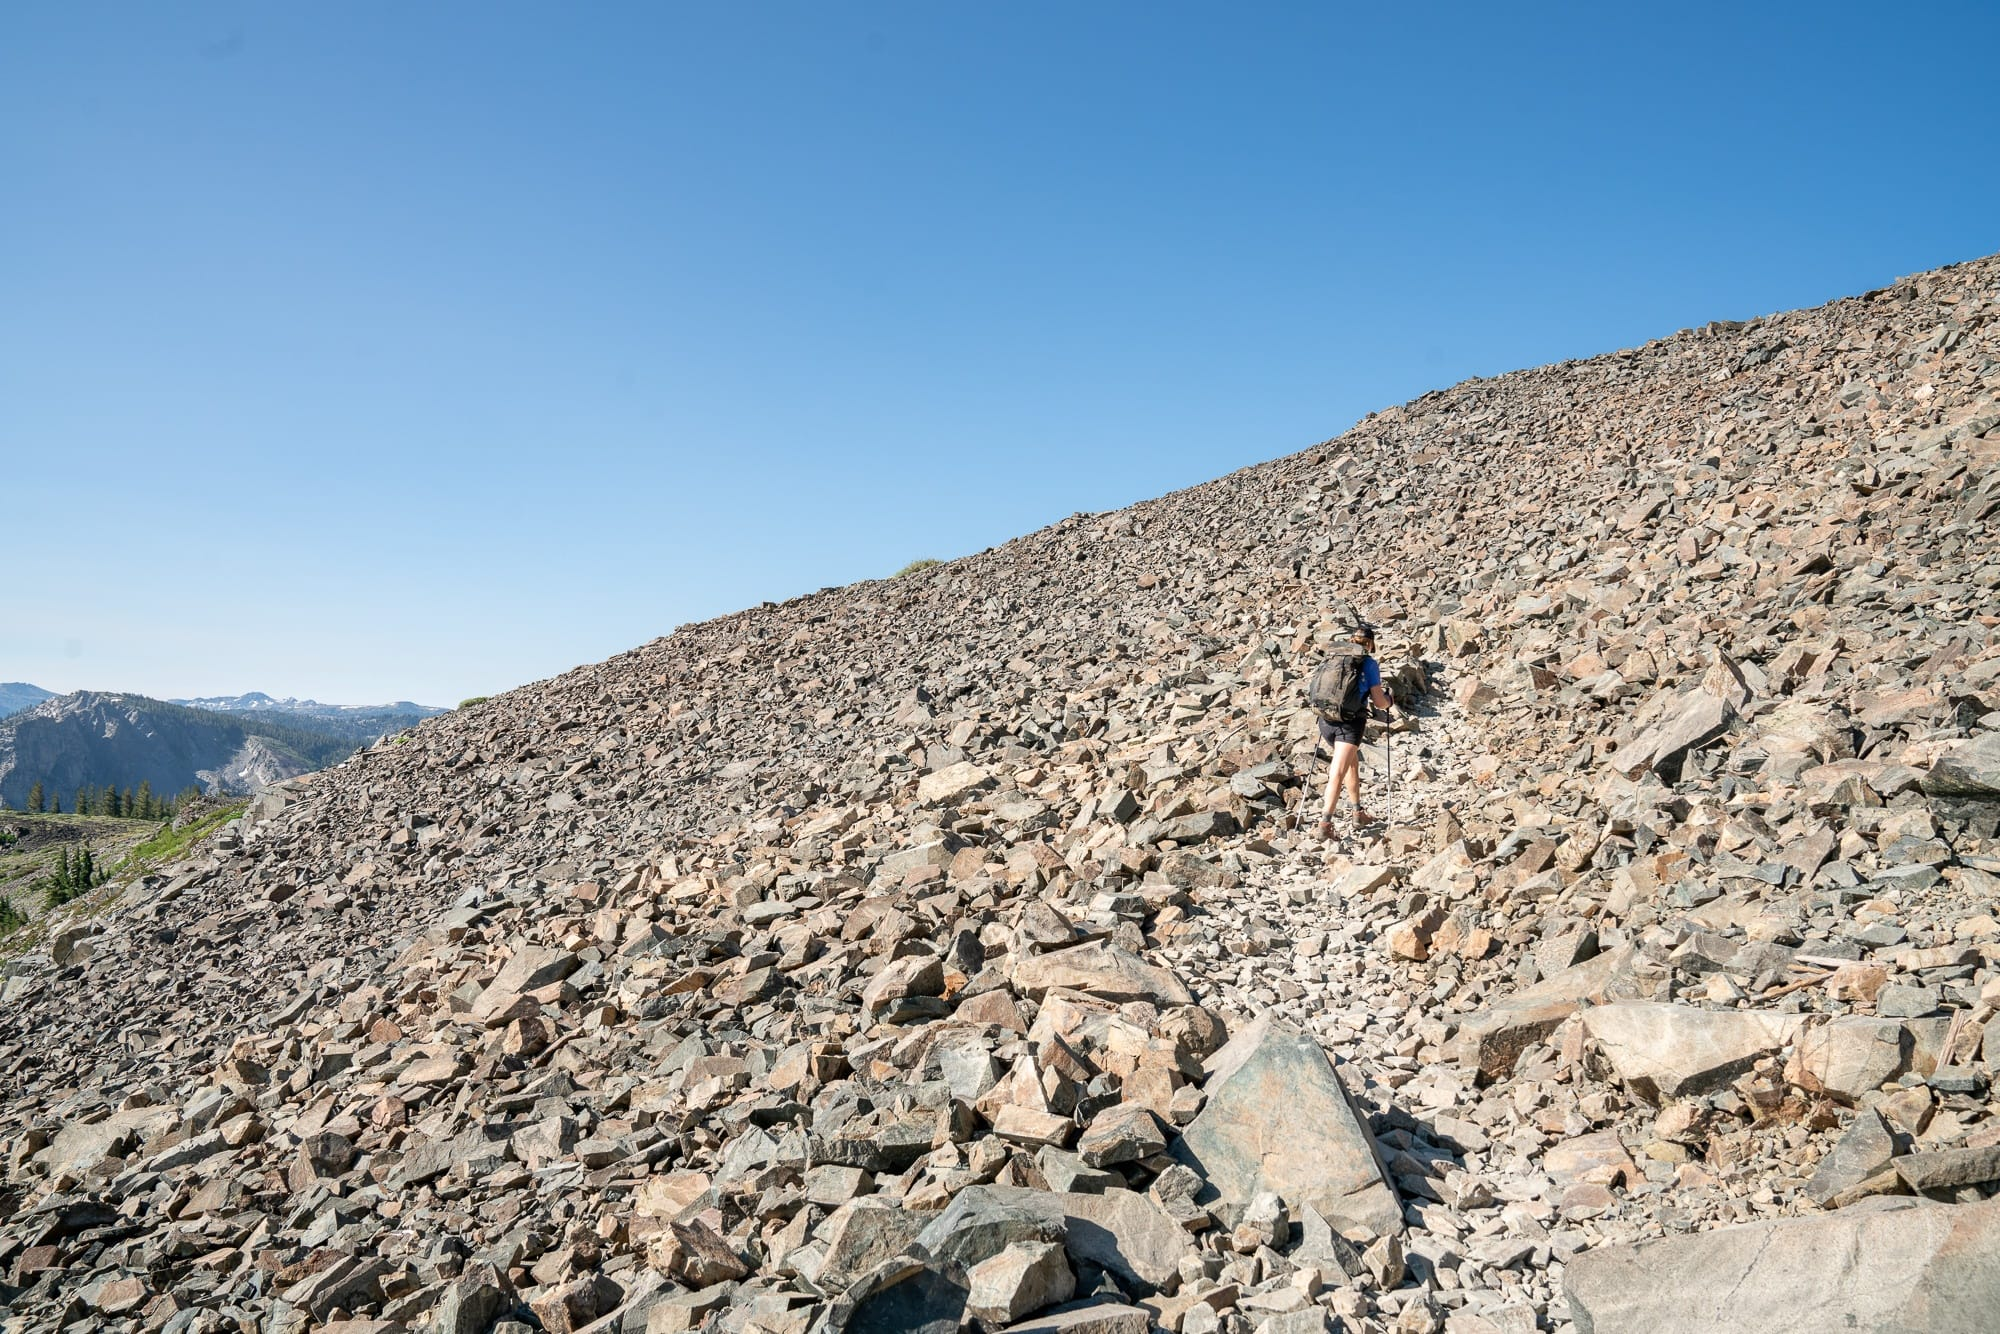 Challenge yourself & hike one of the tallest peaks on Lake Tahoe. Get ready for one of the best hikes in Tahoe with our Mt. Tallac trail guide.